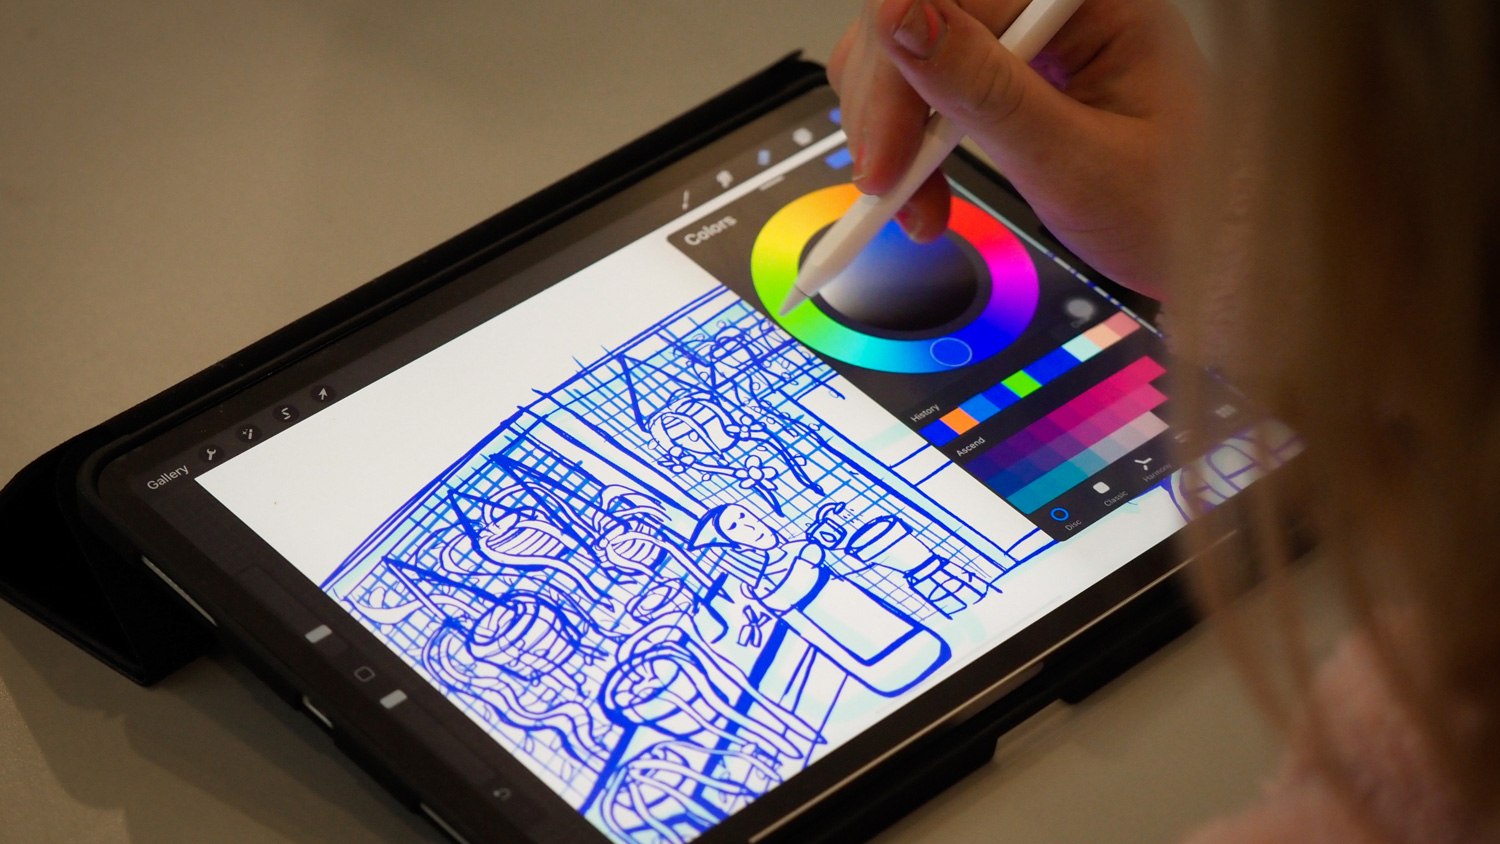 Student drawing on tablet